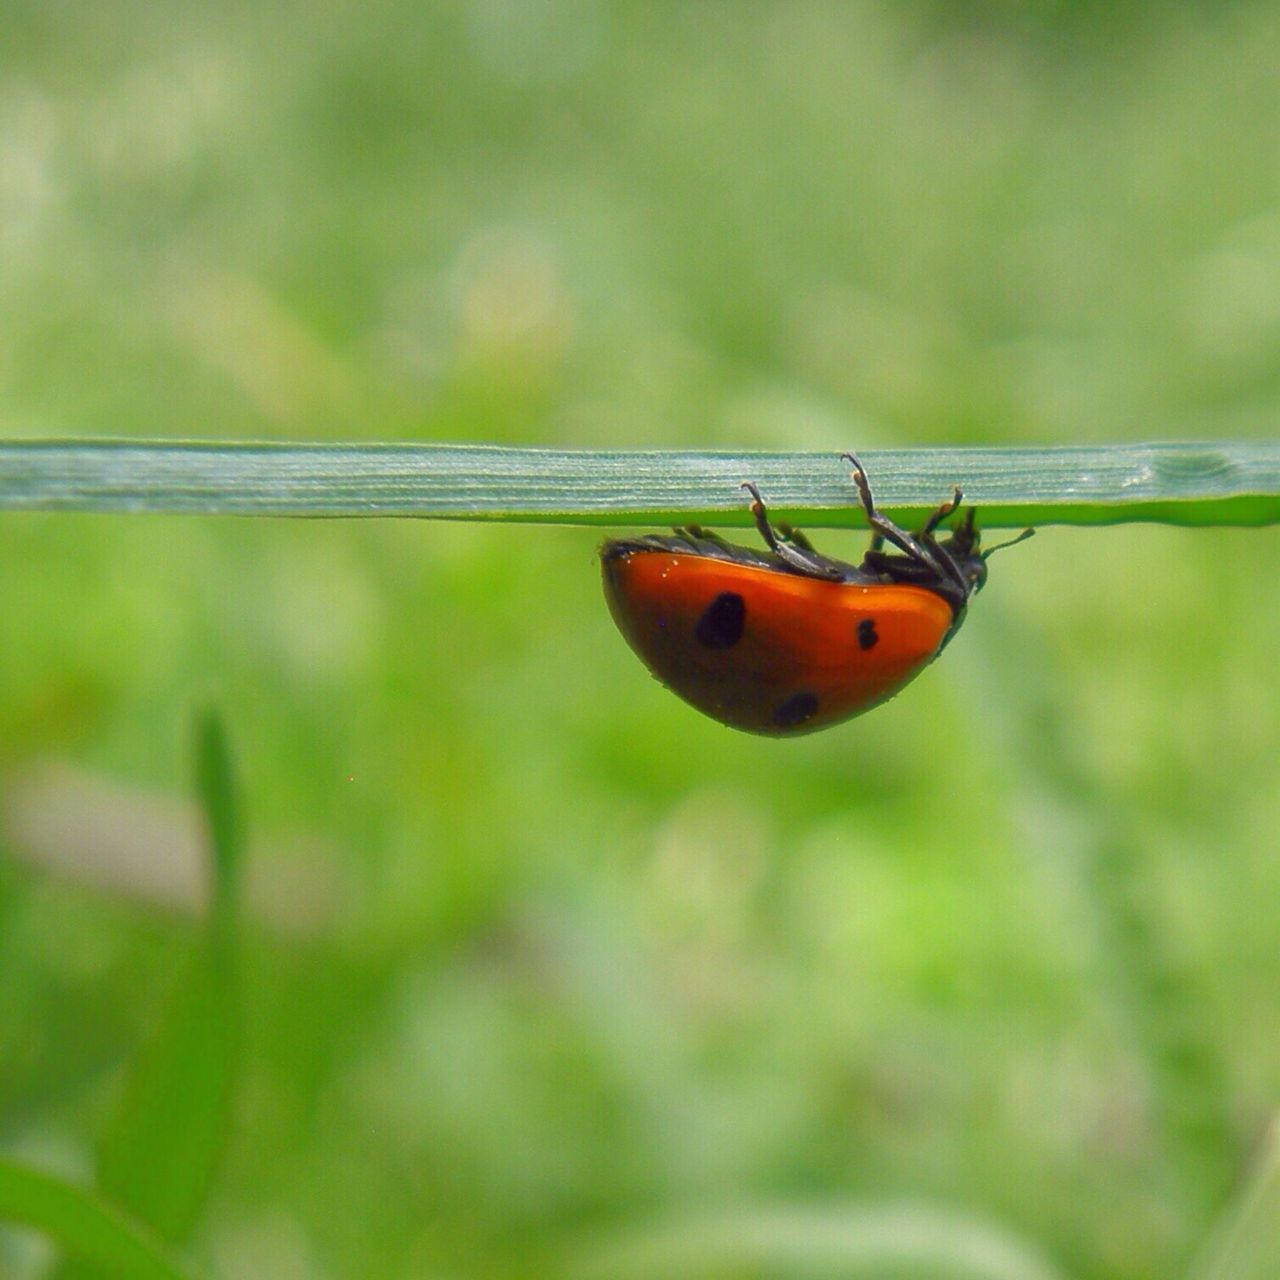 Insect Animal Themes One Animal Animals In The Wild Focus On Foreground Close-up Ladybug Nature Animal Wildlife No People Outdoors Day Tiny Beauty In Nature Red Ladybeetle Upside Down Ladybug Ladybird Leaf Grass Green Color Green Nature (null)Natural Simplicity Break The Mold